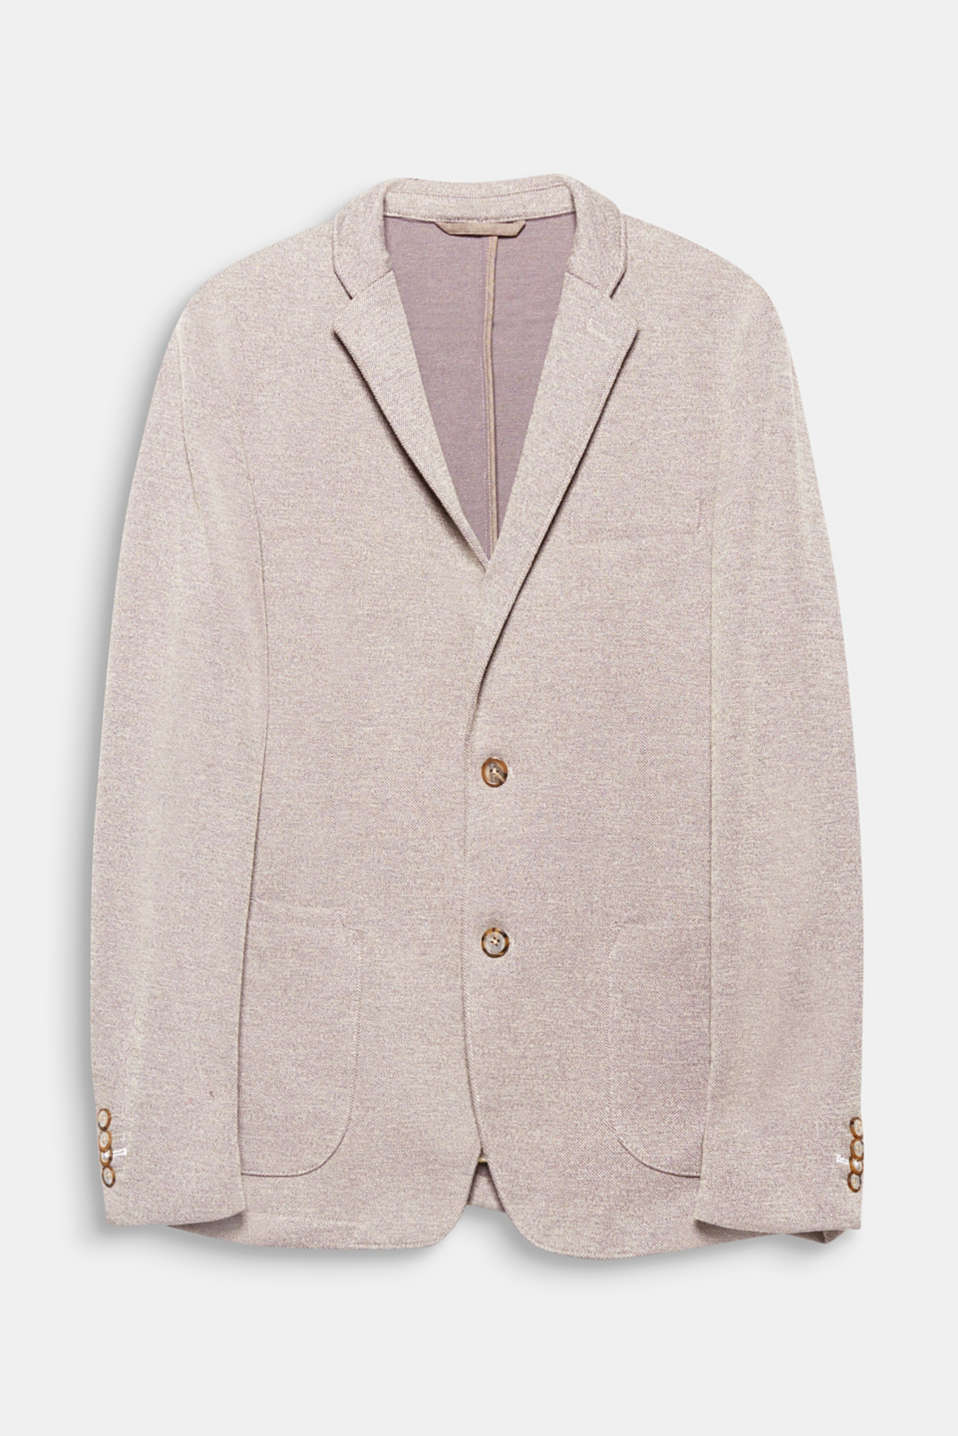 Create a sporty and smart look with this two-tone textured jersey blazer.